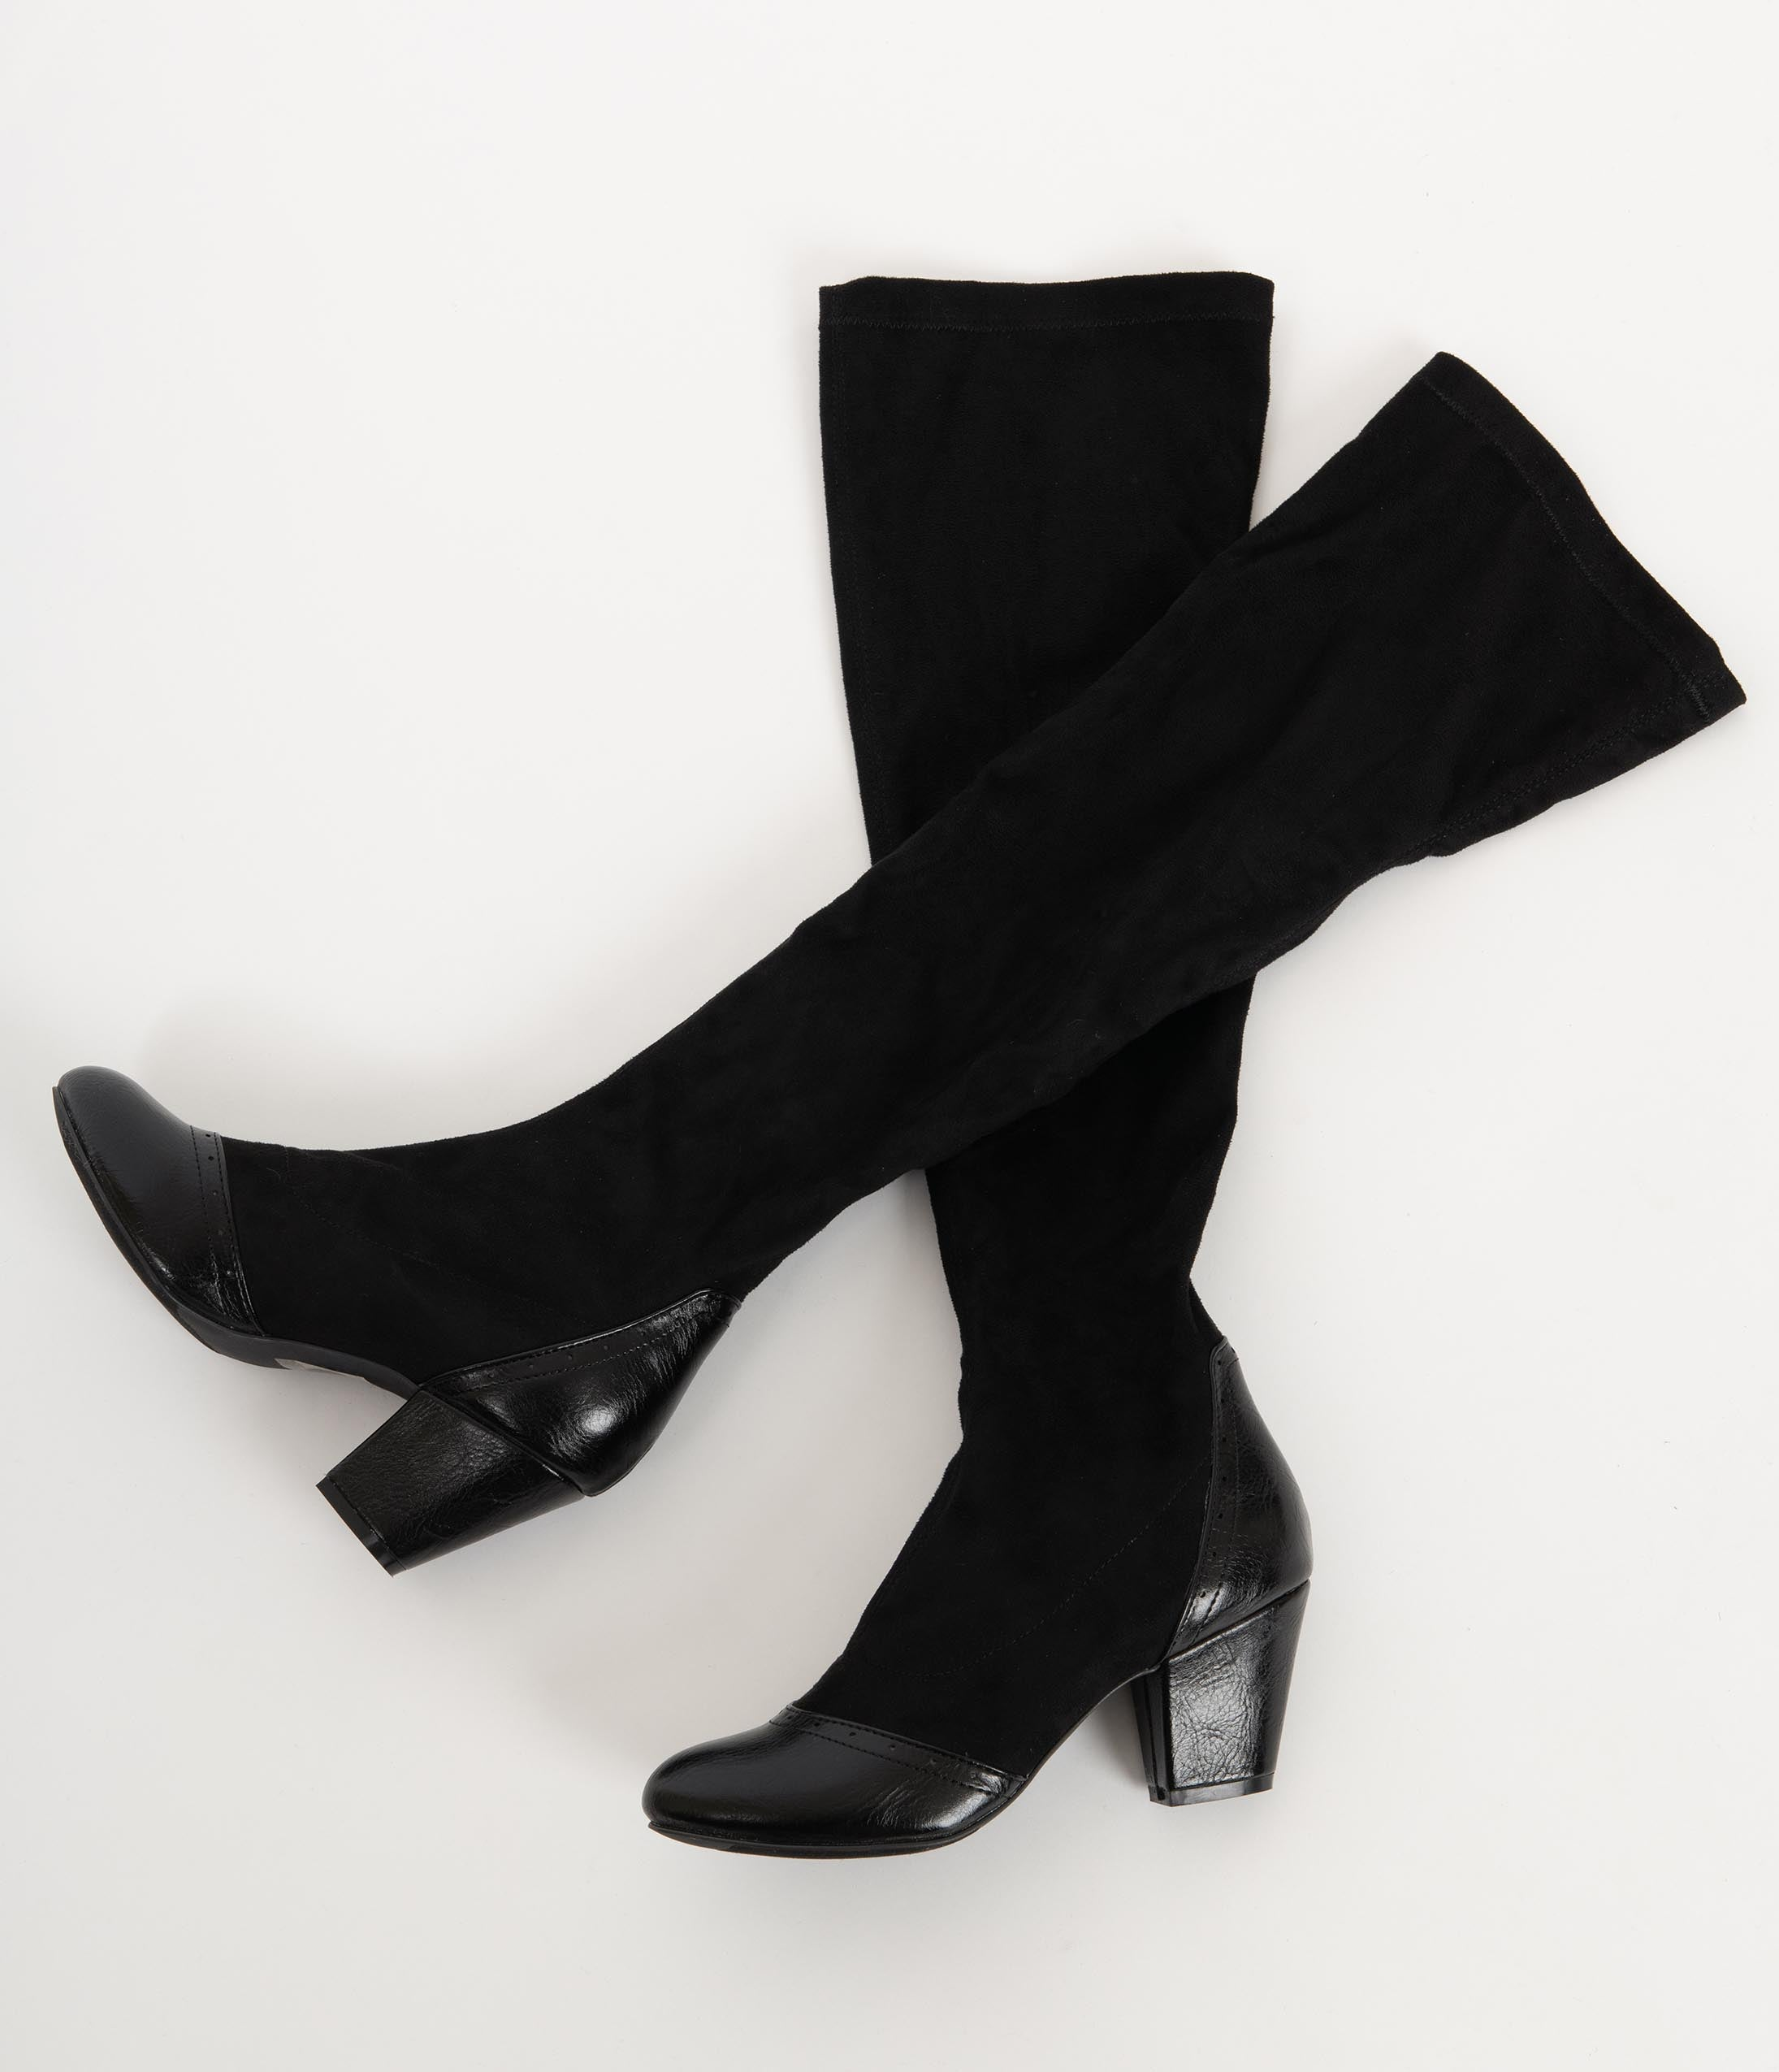 70s Shoes, Platforms, Boots, Heels | 1970s Shoes B.a.i.t. Black Suede Hysteric Knee-High Boots $86.00 AT vintagedancer.com